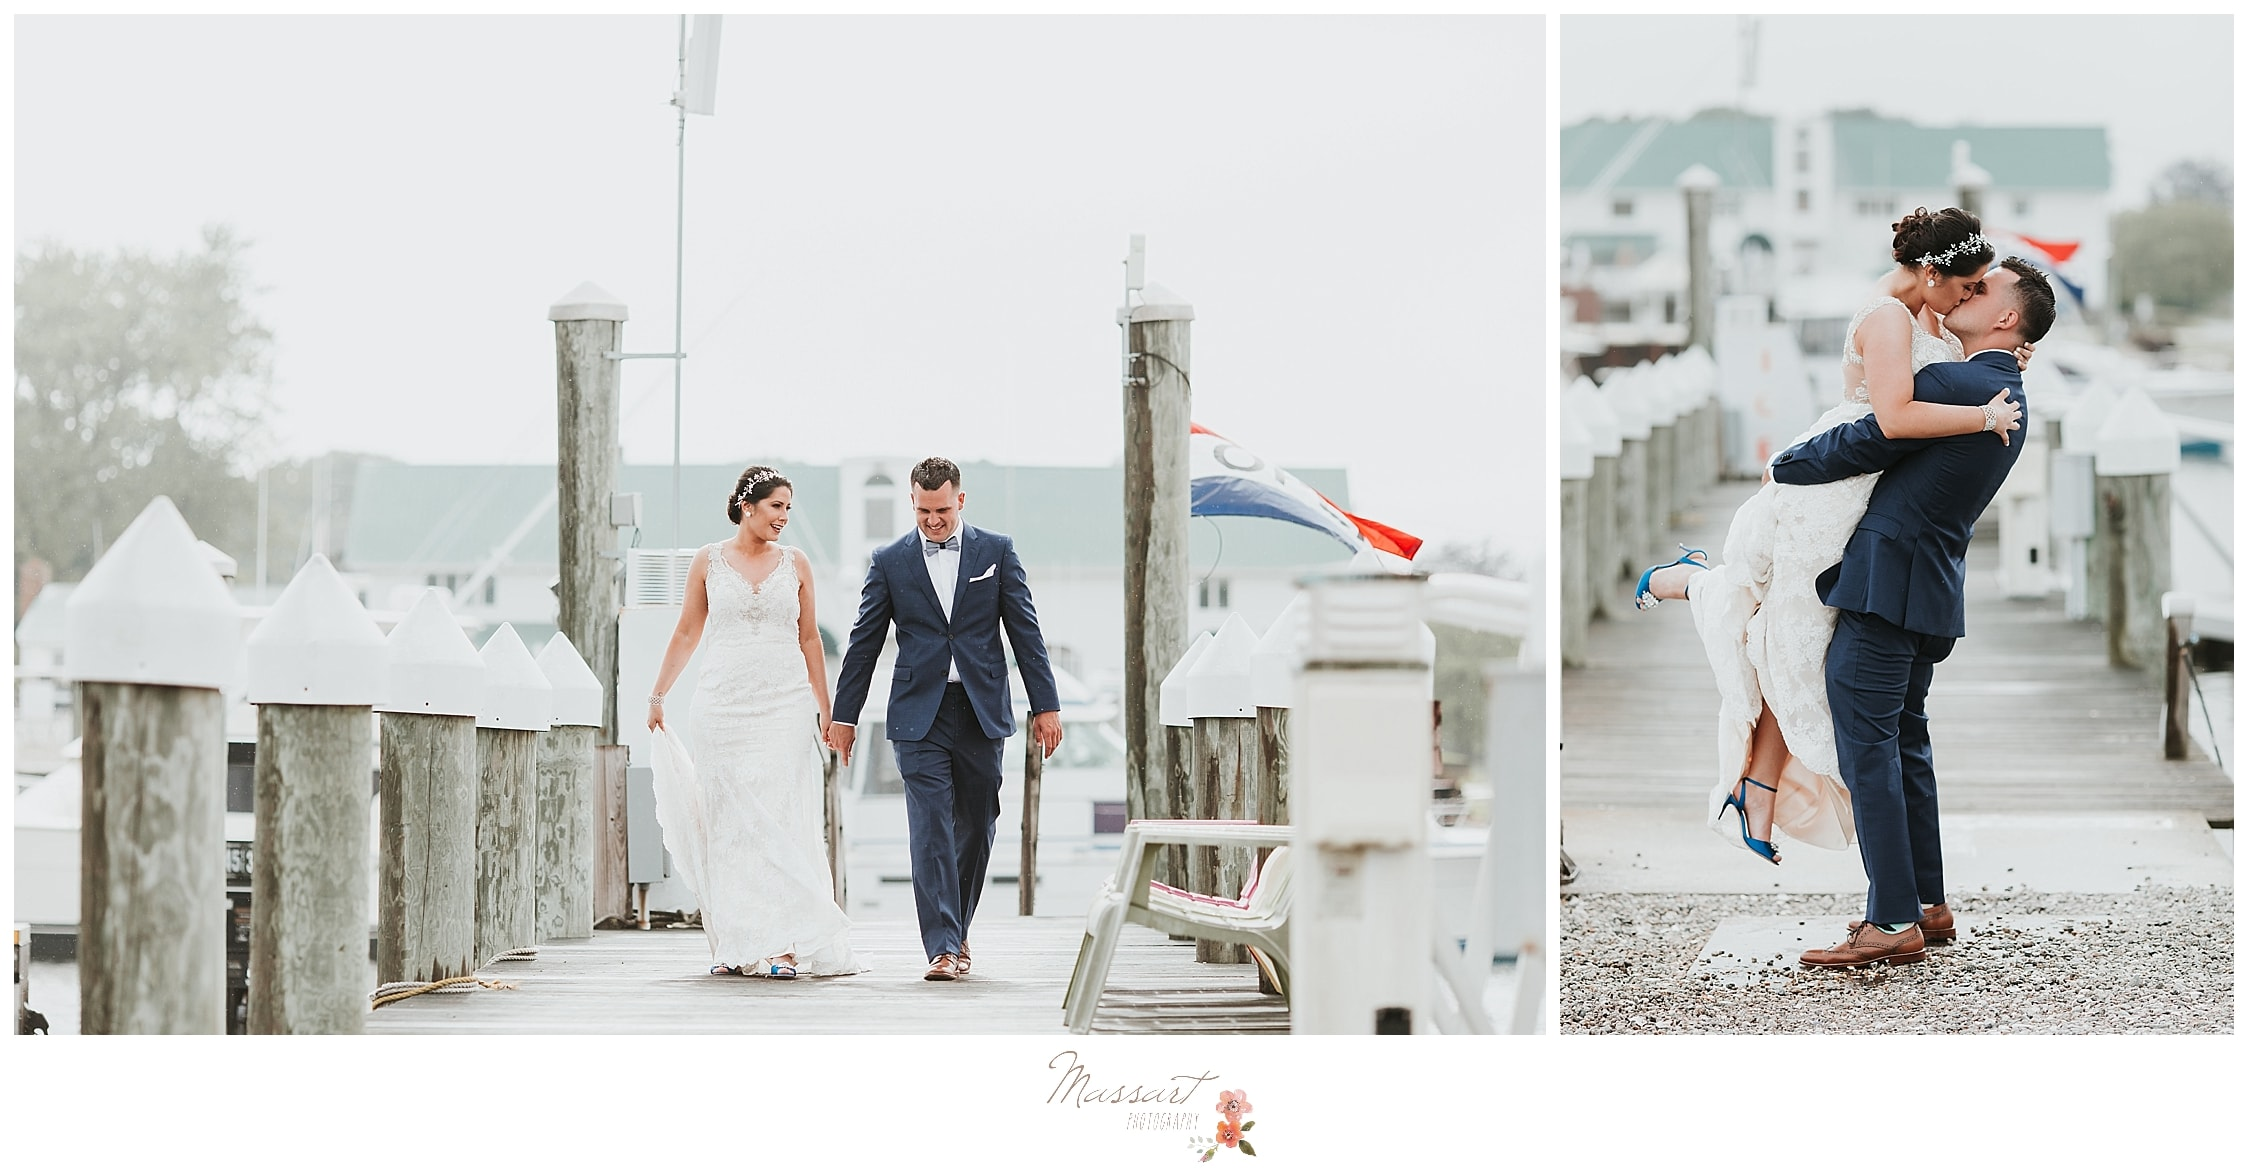 Bride and groom portraits on the marina at Harbor Lights in RI captured by RI wedding photographers Massart Photography.